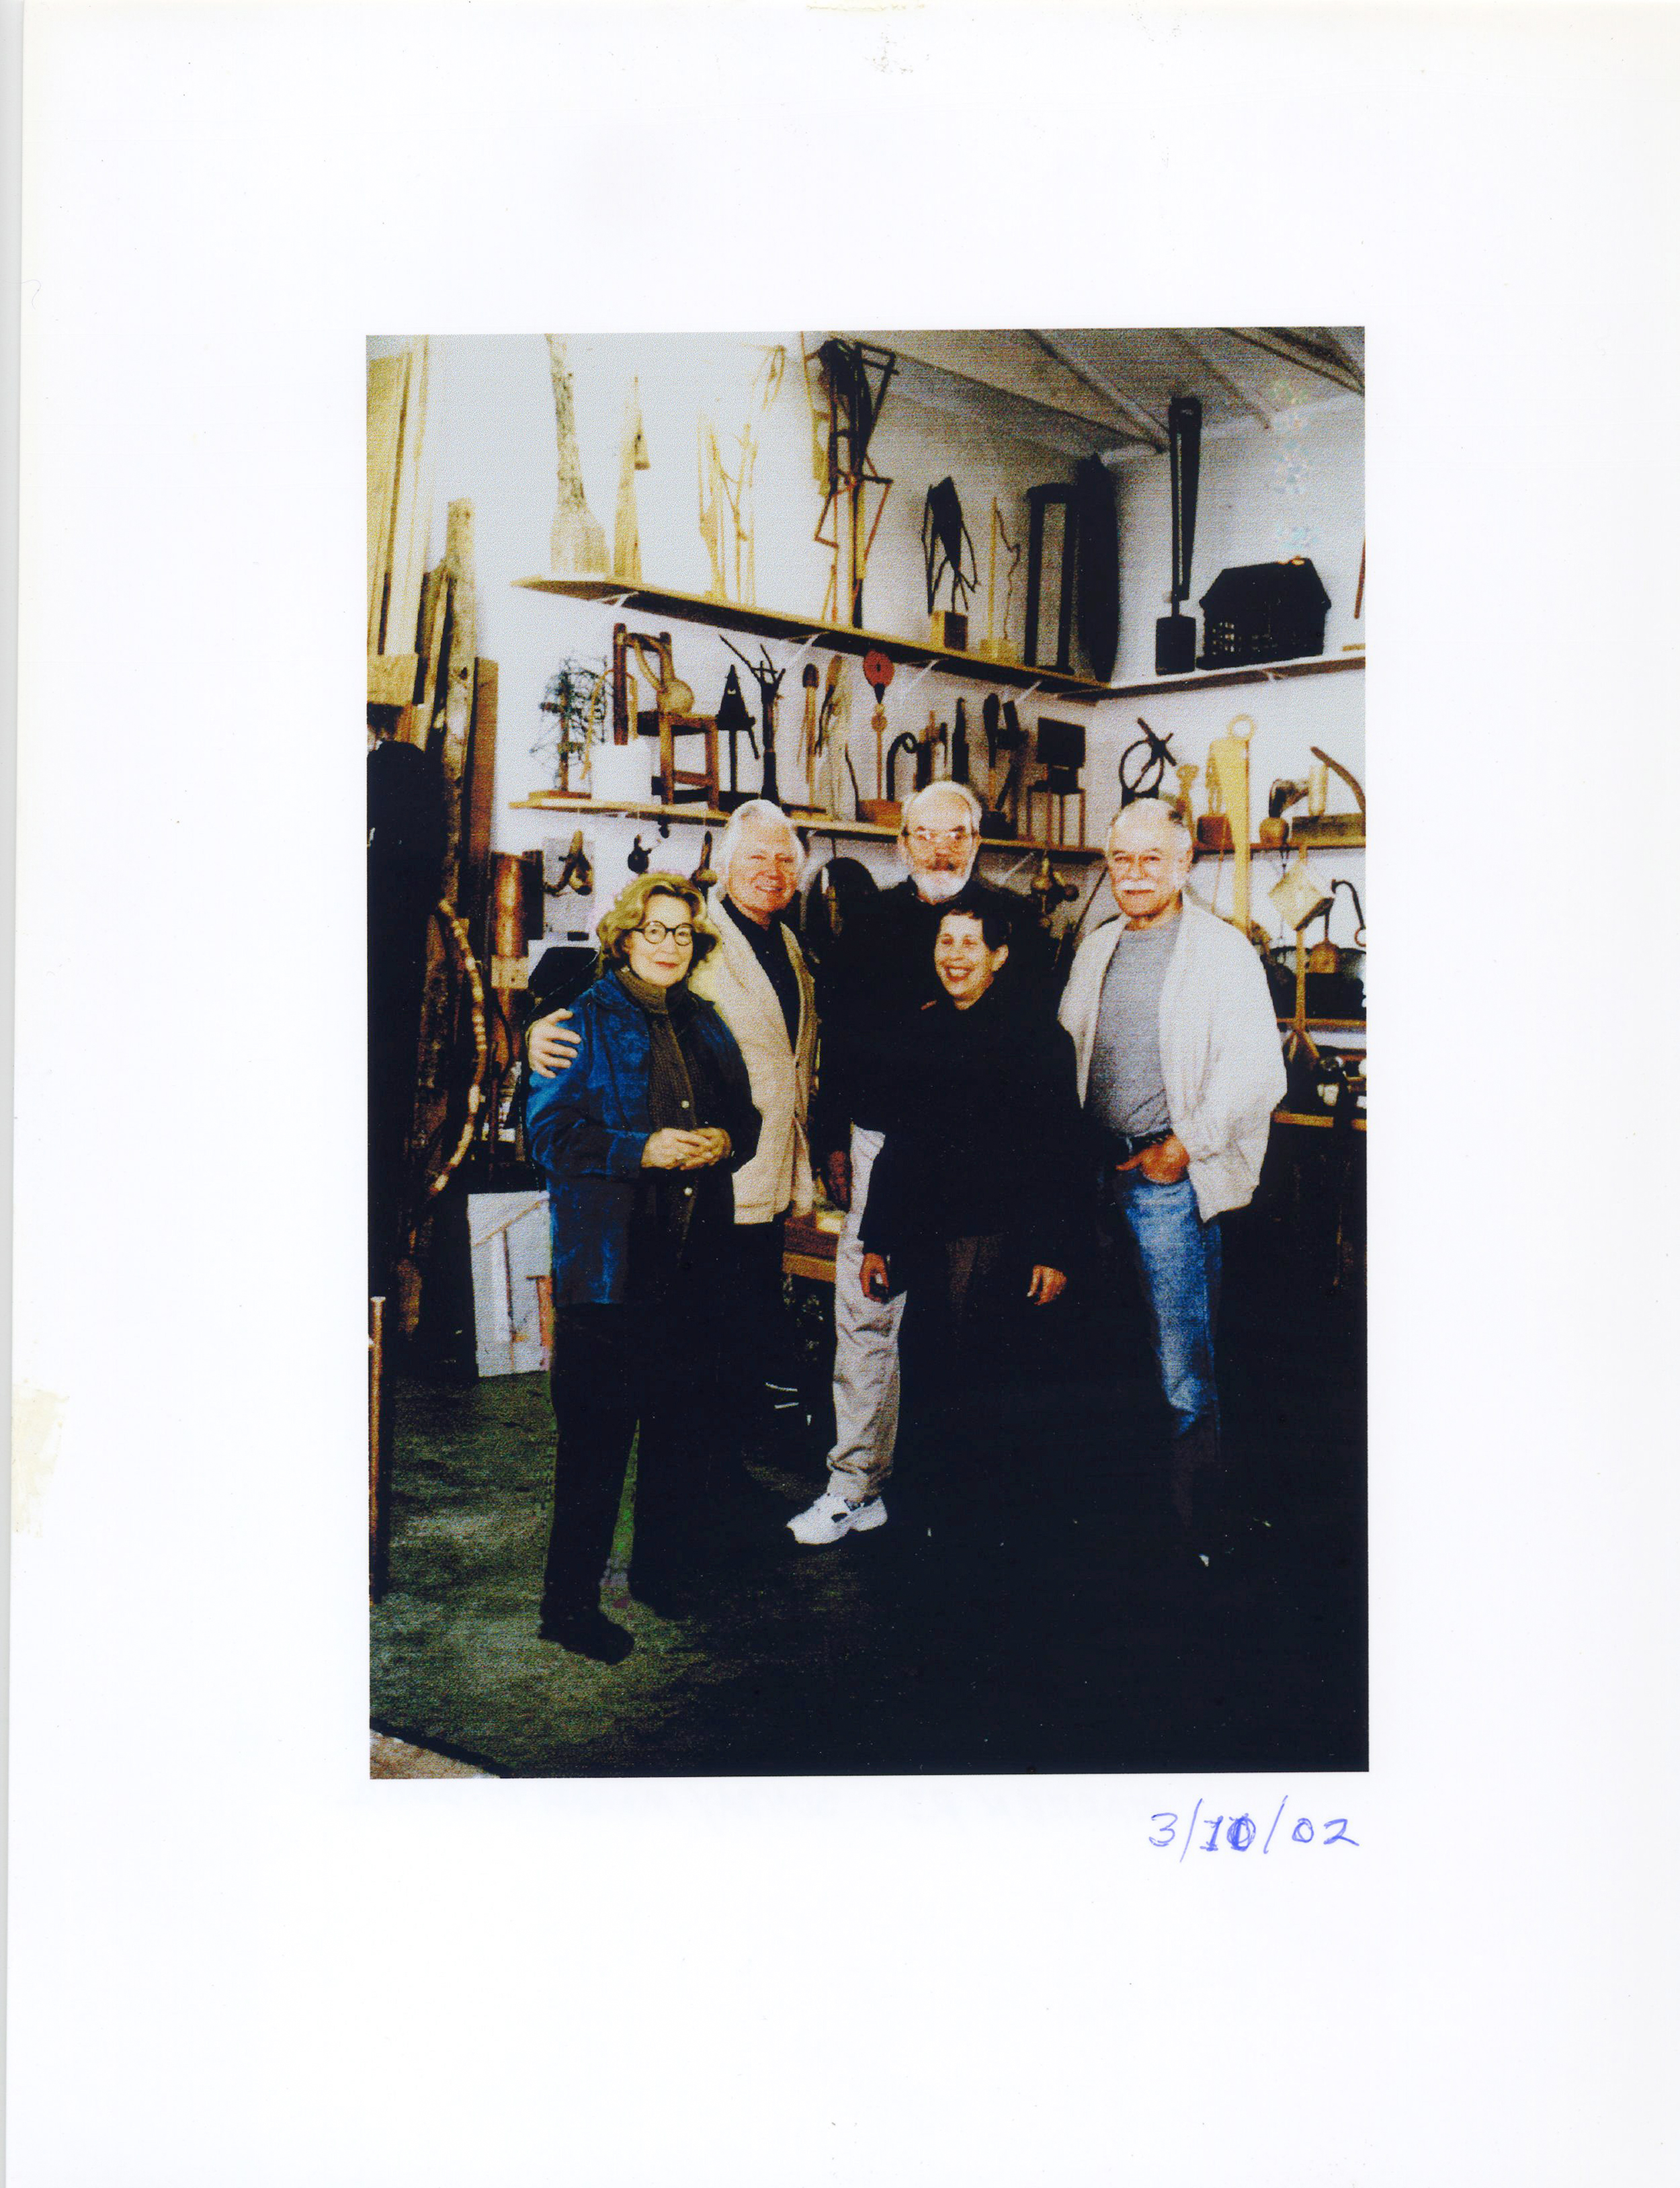 Friends and colleagues on a visit to JU's studio, 60 Croade St., Warren, RI. Left to right - Mary Townley, JU, Hugh Townley, Bunny Fain, and Jean Fain in the foreground.March 10, 2002